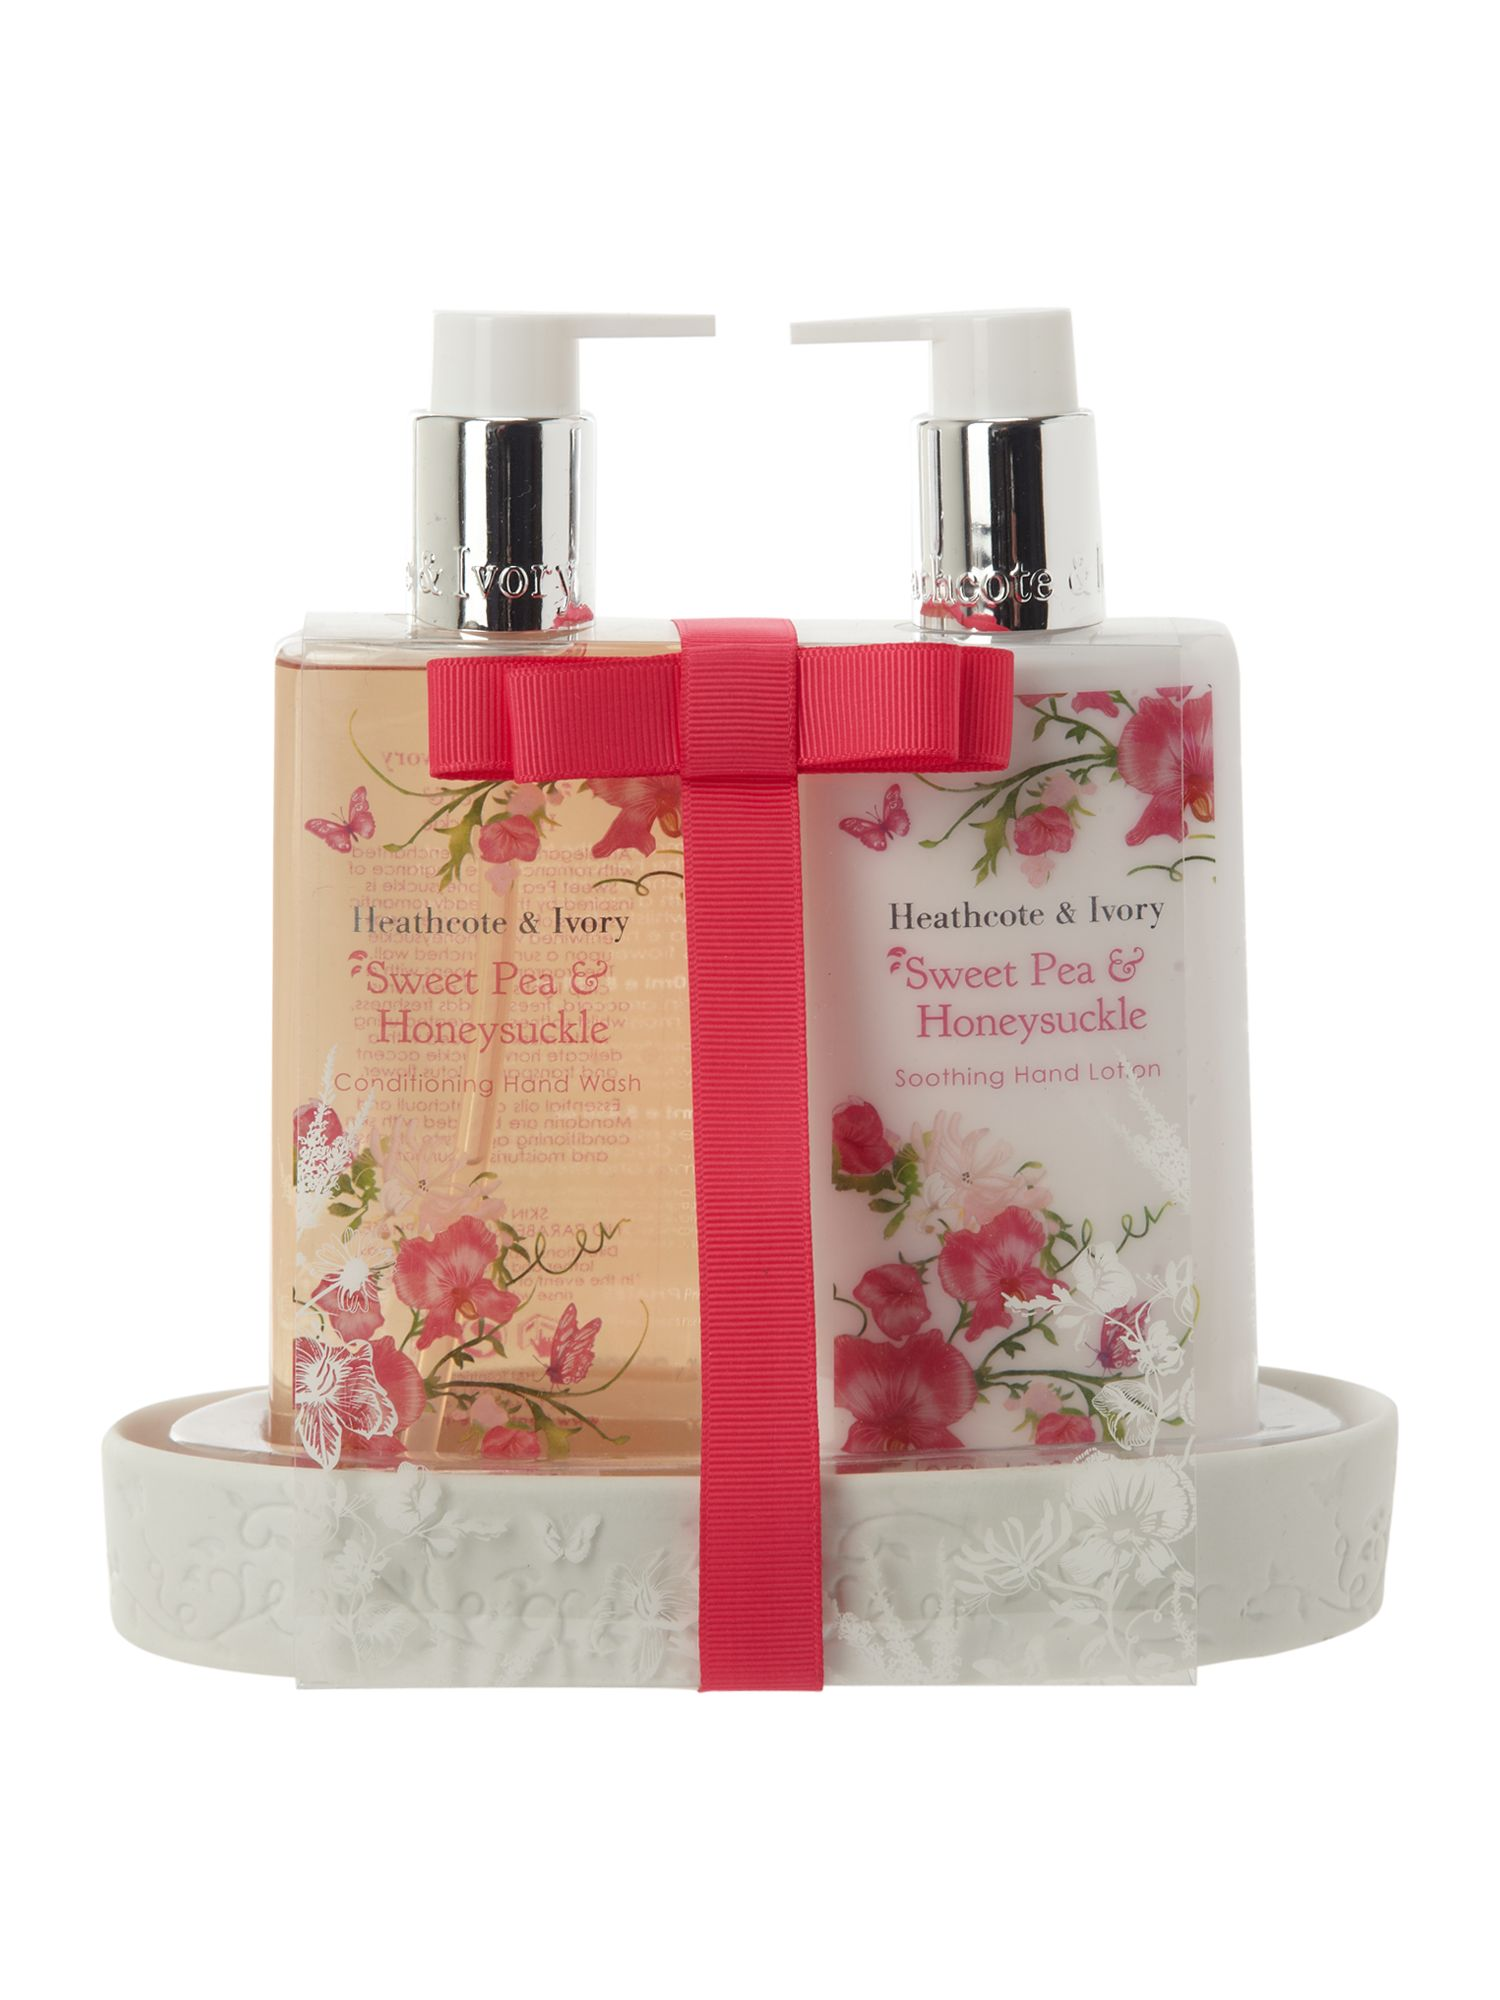 Sweet Pea & Honeysuckle Hand Wash & Lotion